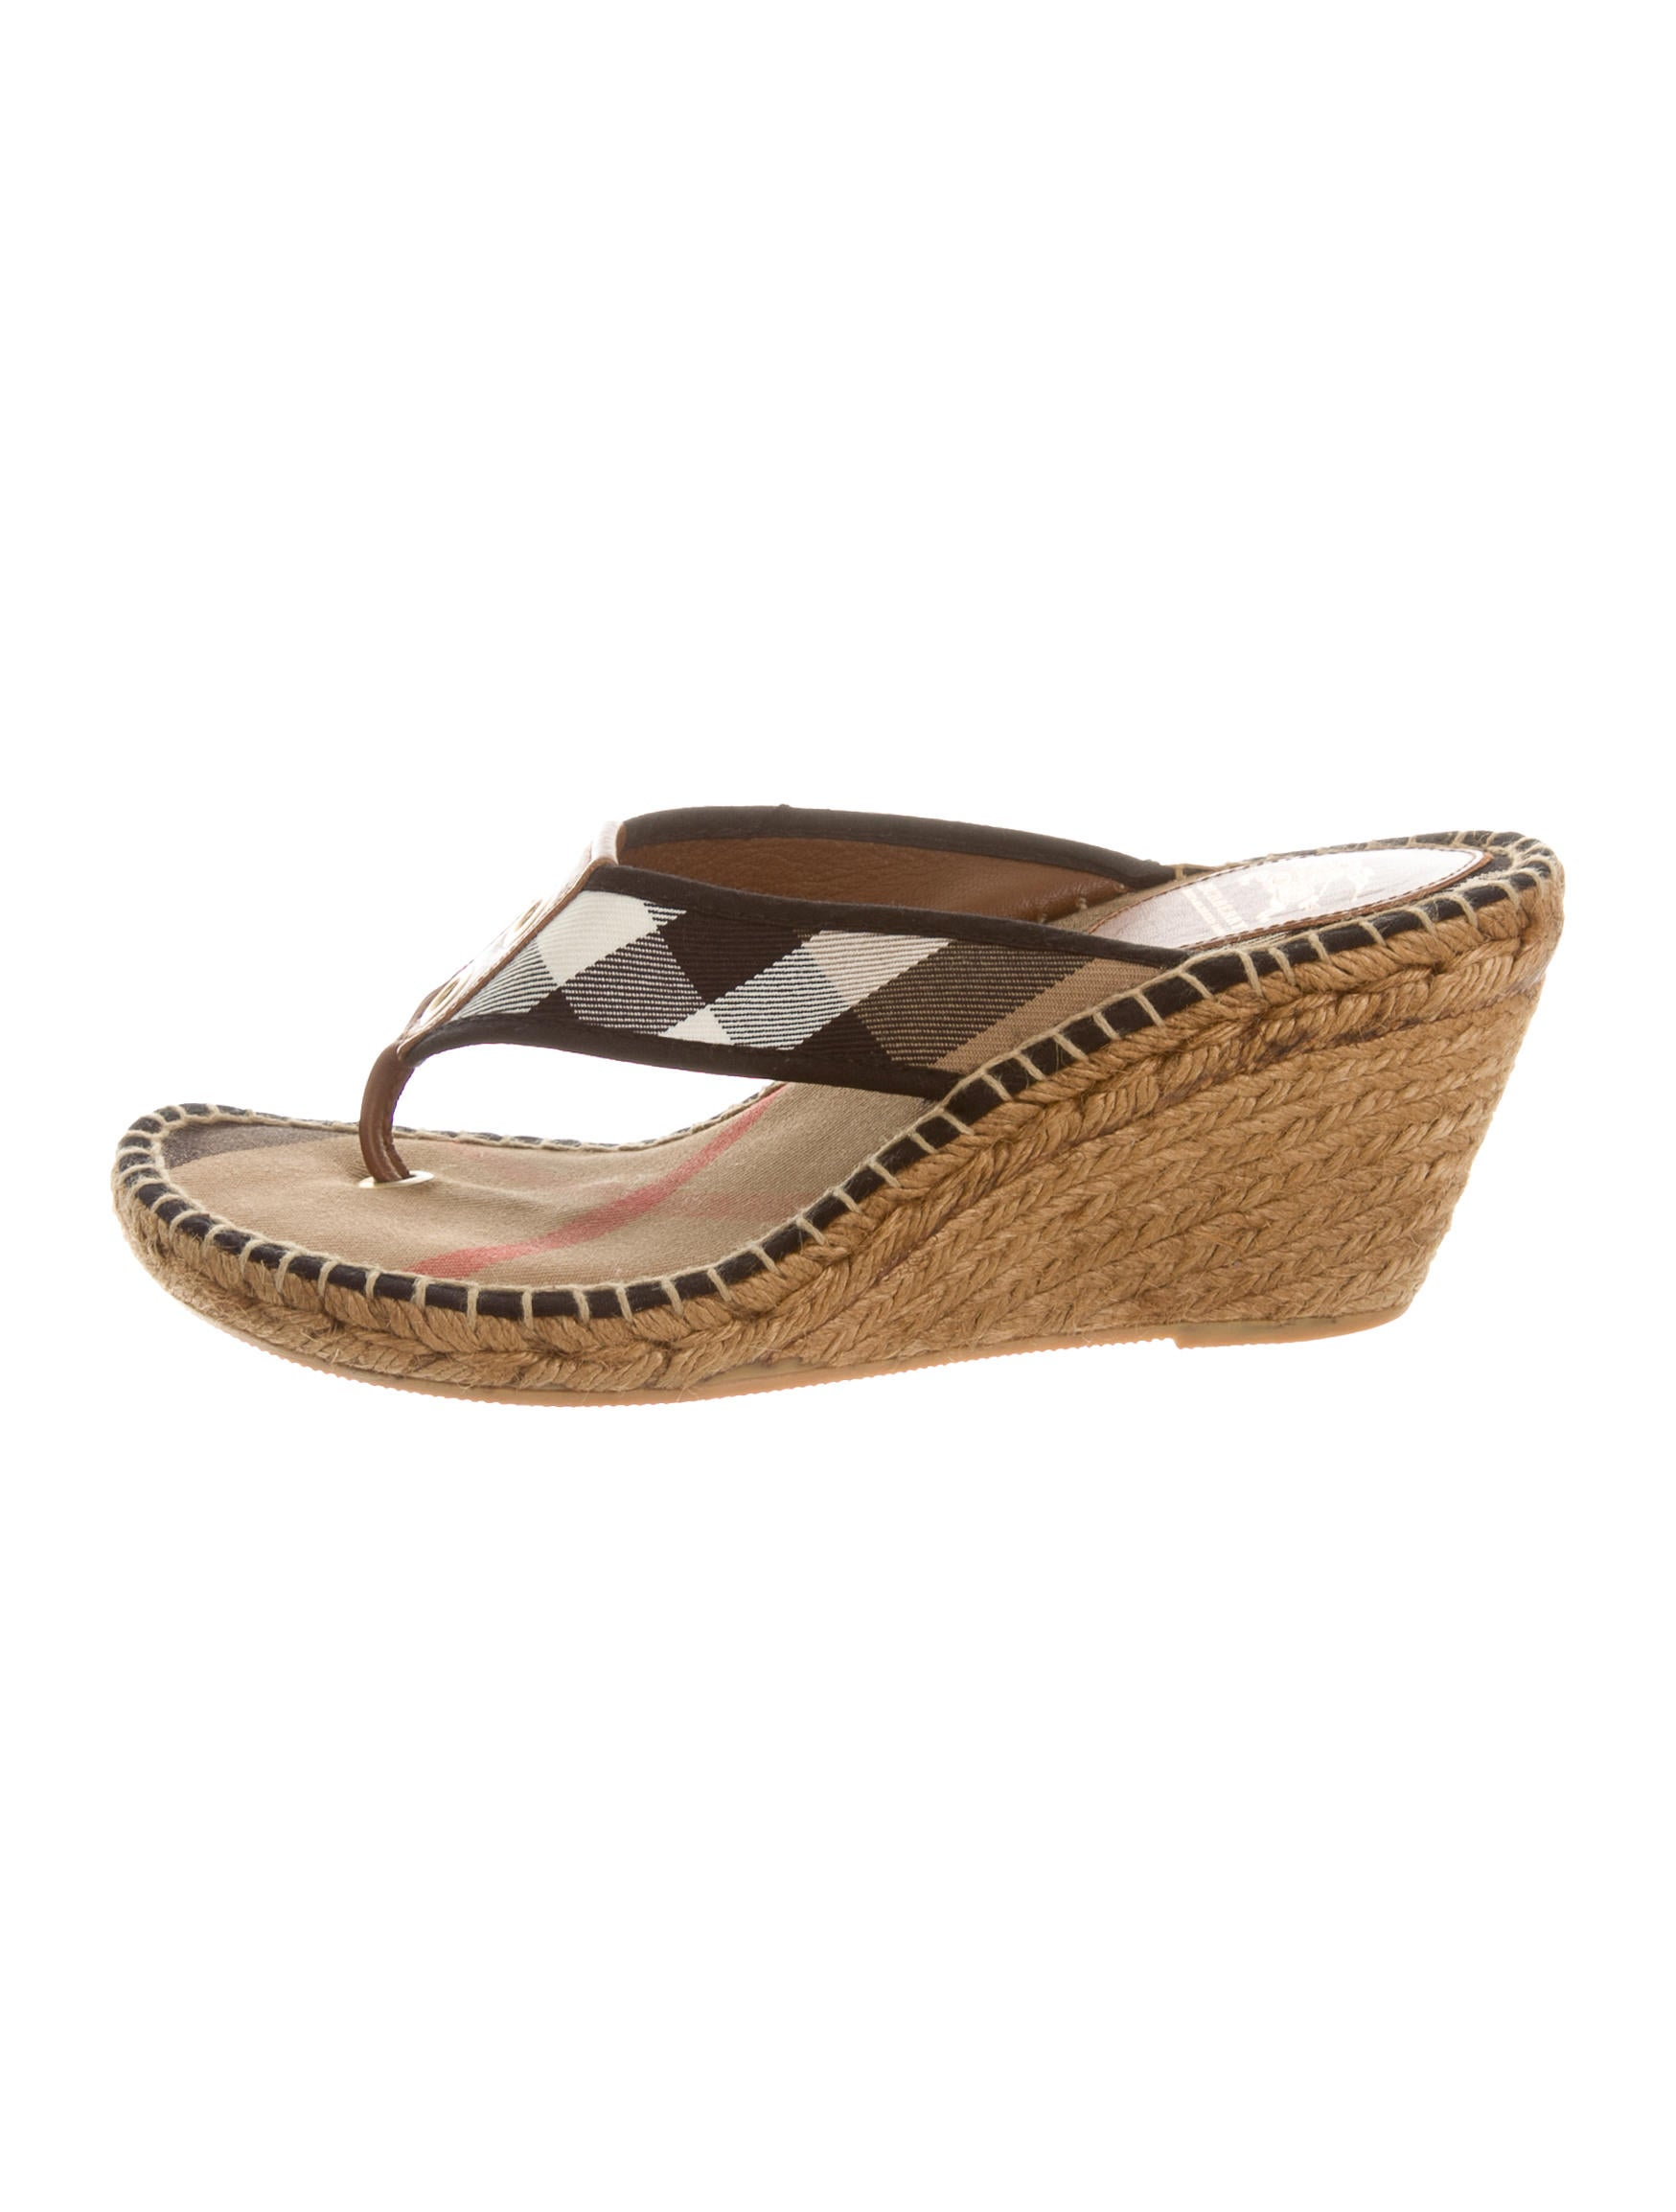 Burberry Nova Check Espadrille Sandals Shoes BUR58611  : BUR586111enlarged from www.therealreal.com size 1749 x 2308 jpeg 159kB